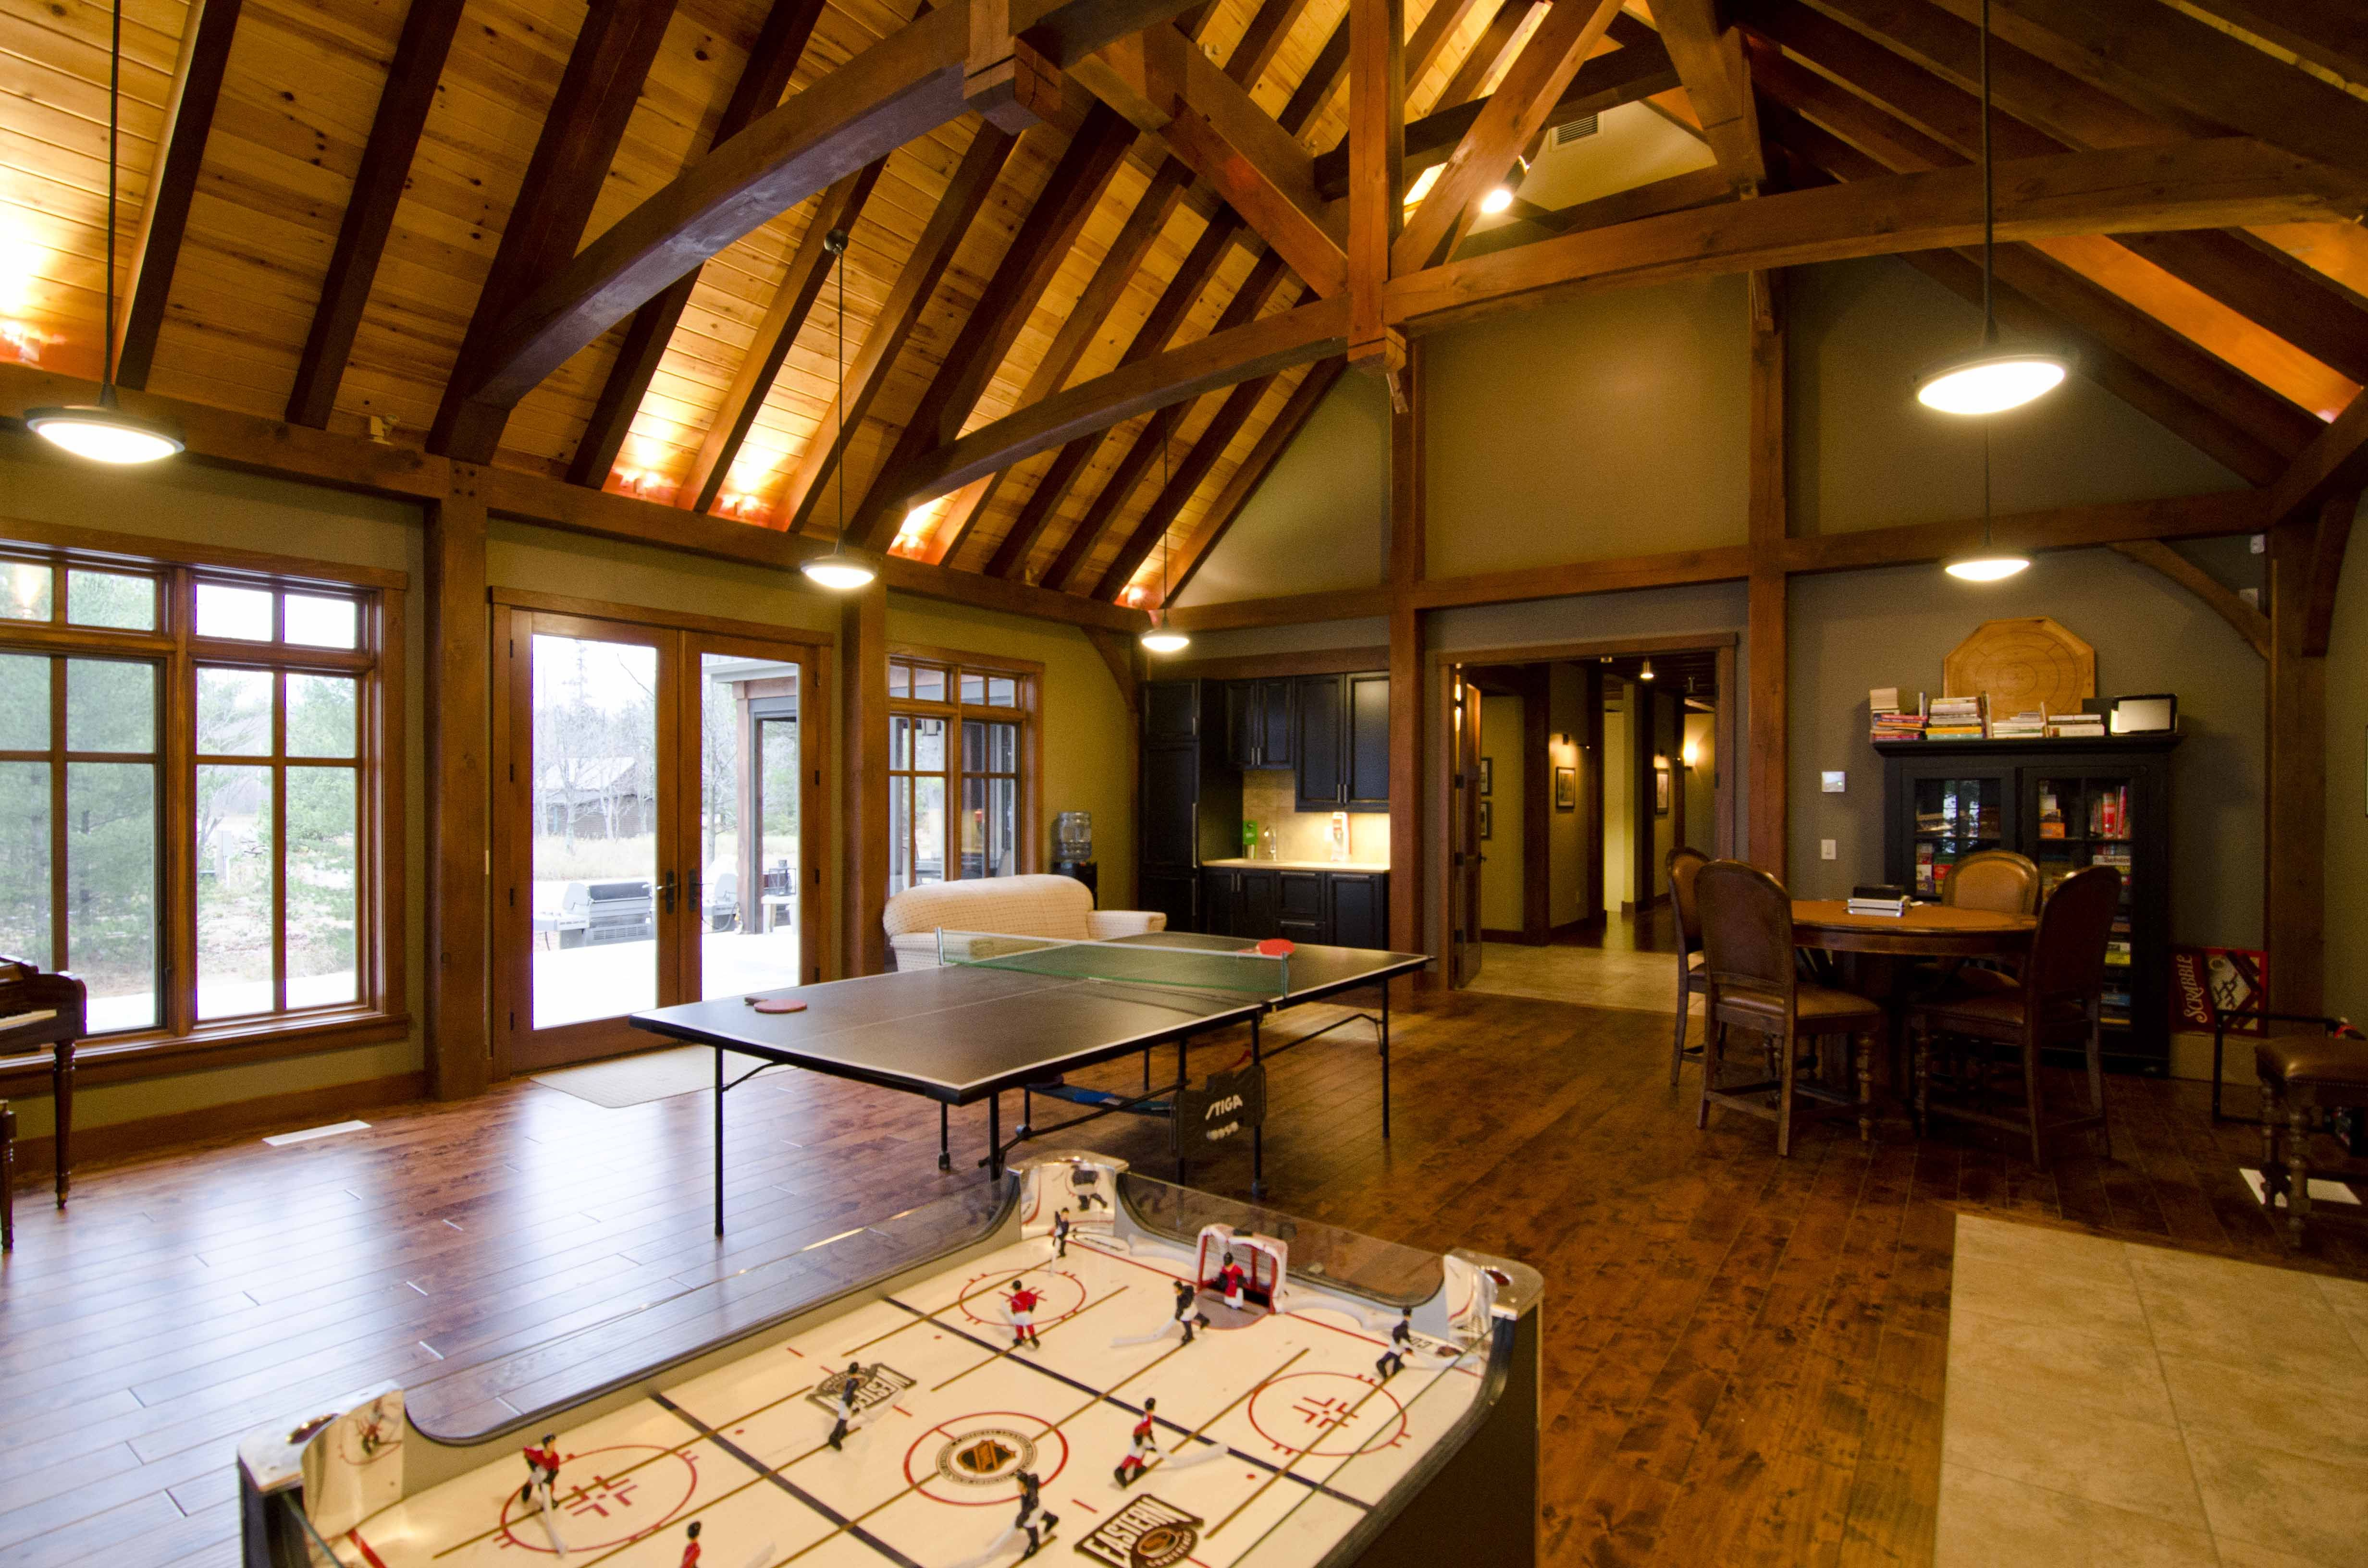 A Frame Home Interiors timber frame home interior kitchen is modern yet rustic Timber Home Designs Home